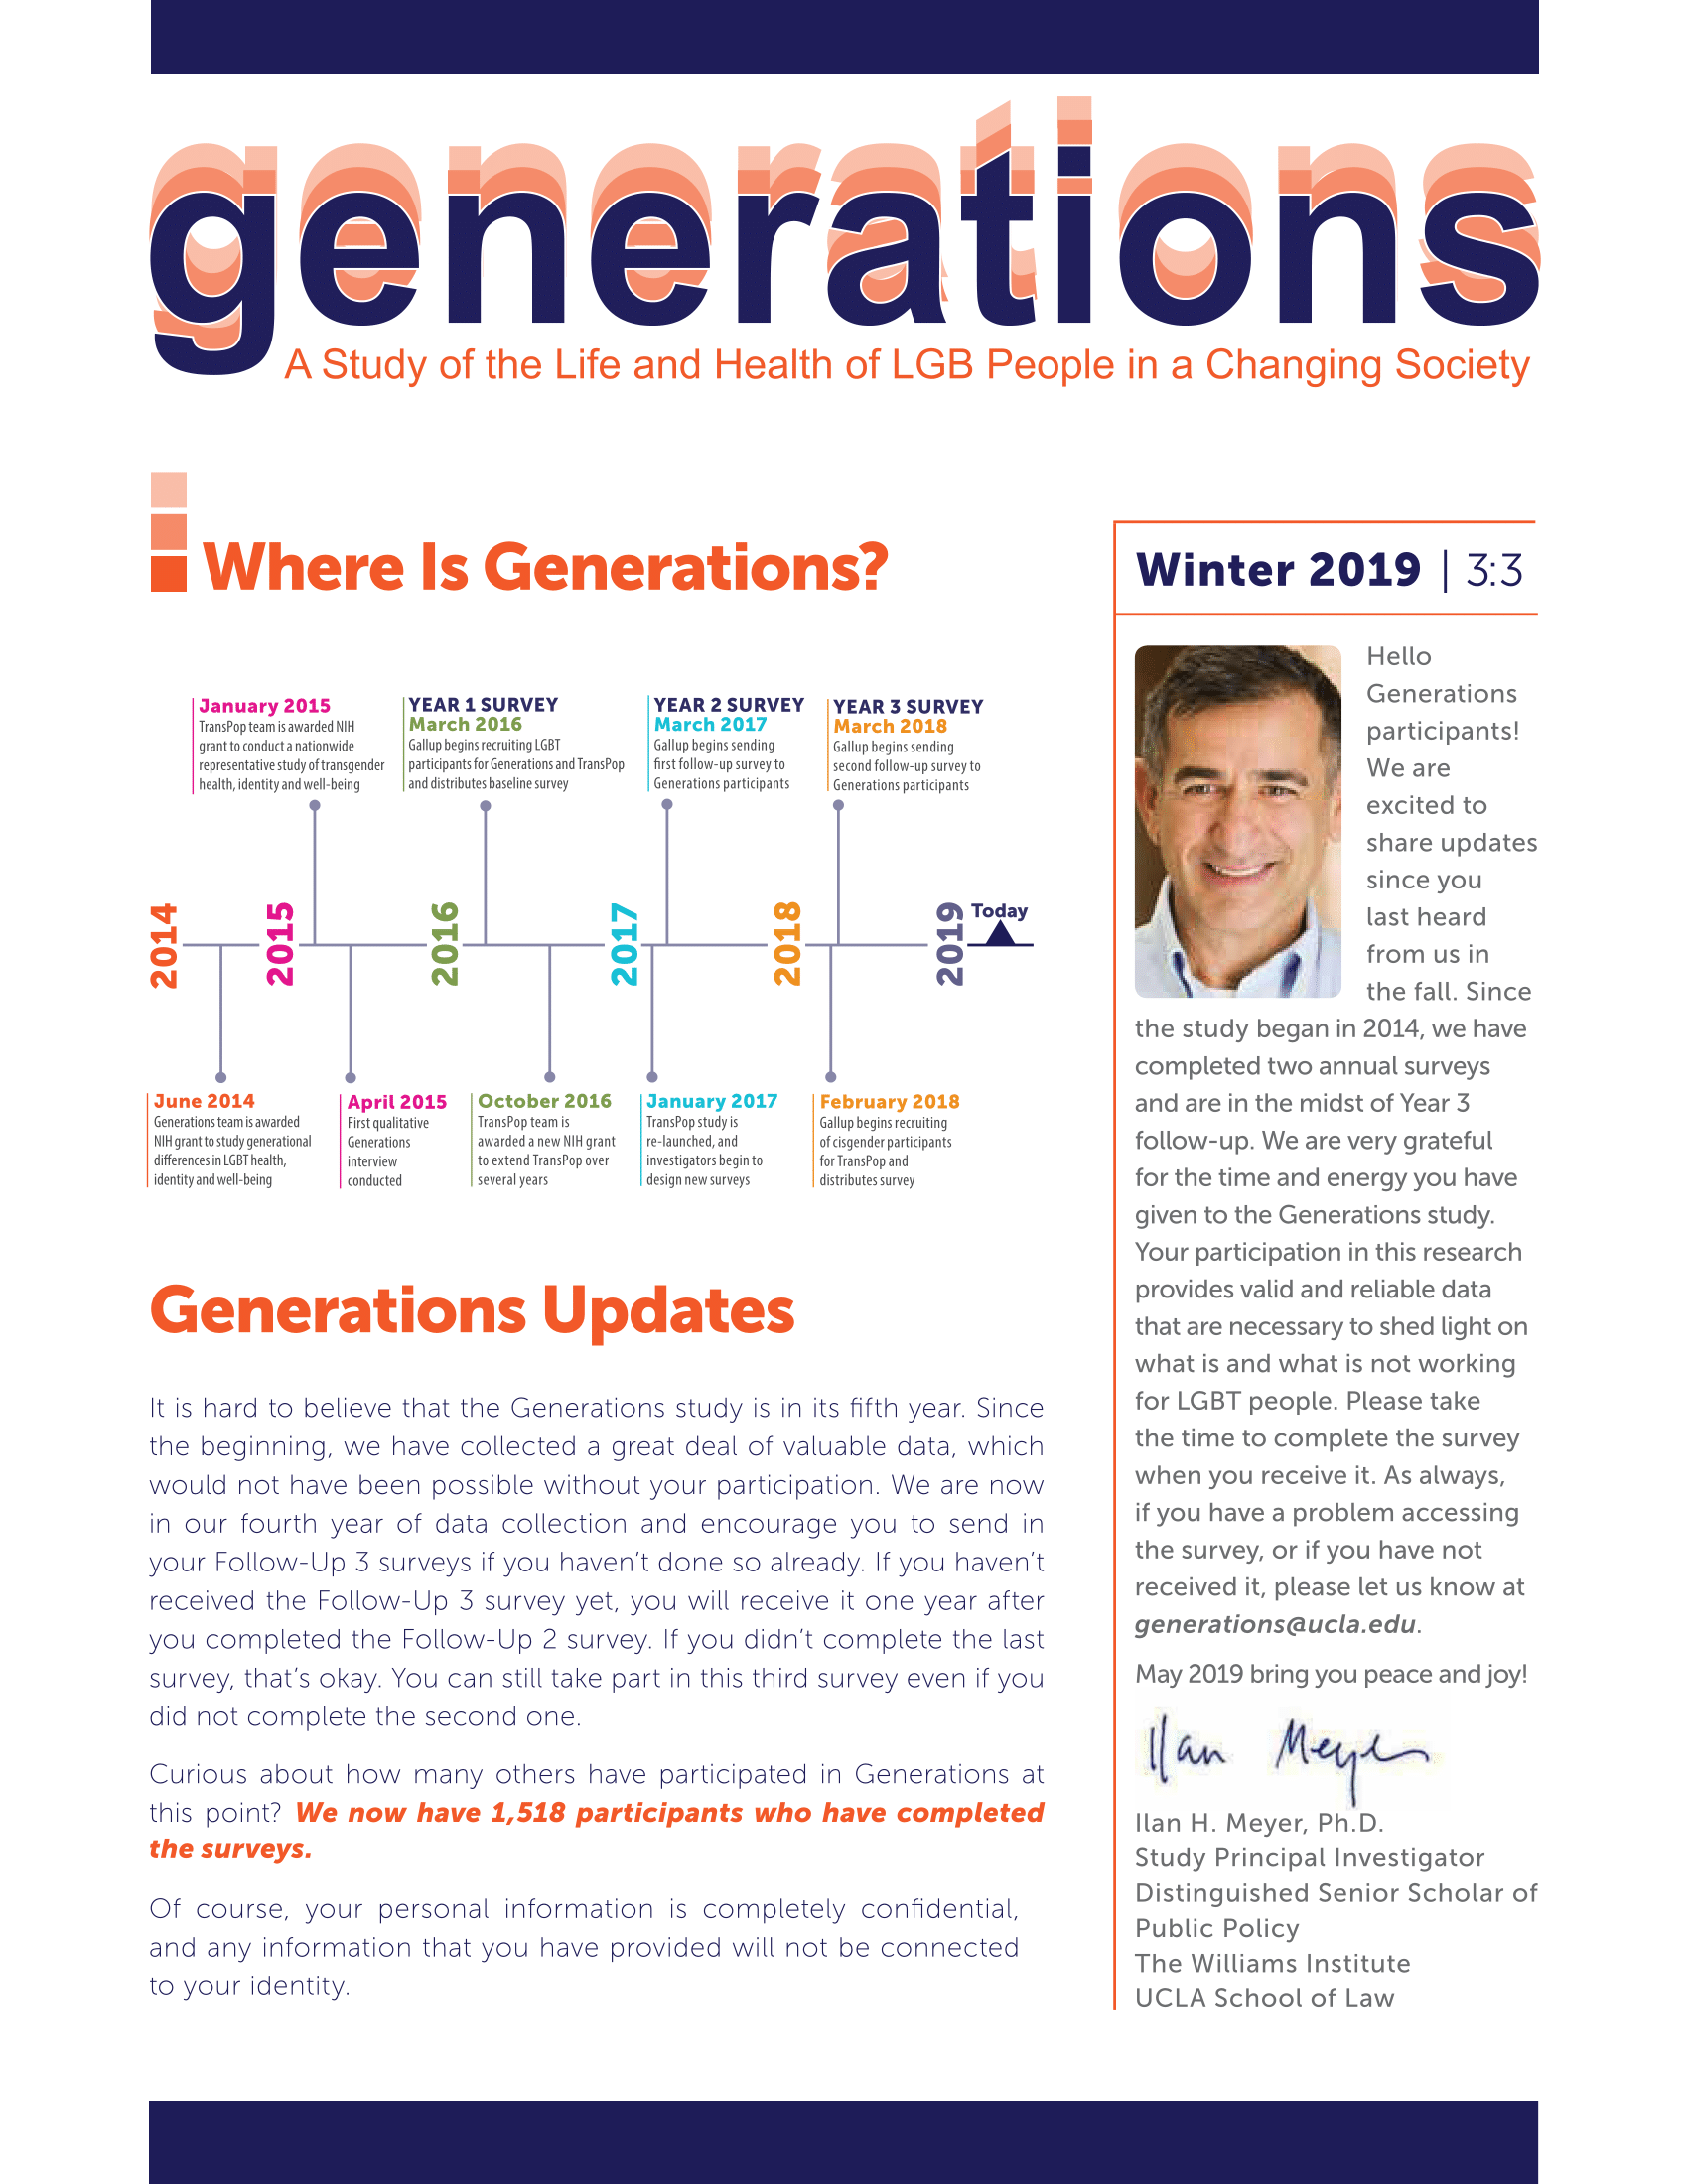 Winter 2019 Newsletter-1.png